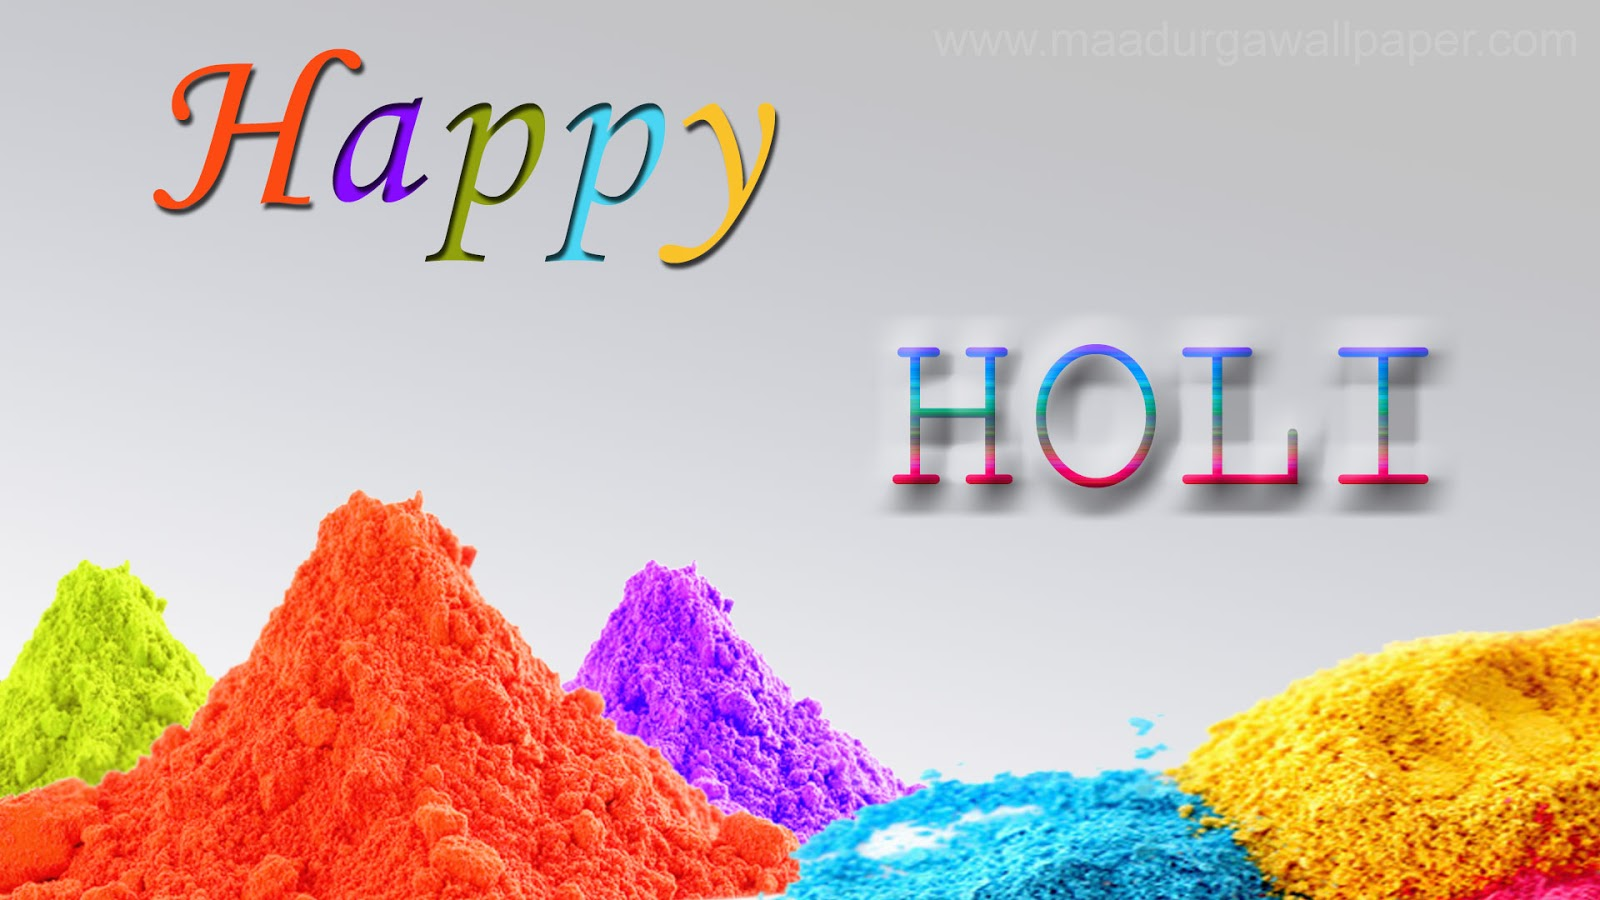 Happy Holi HD Wallpapers with Holi HD Images